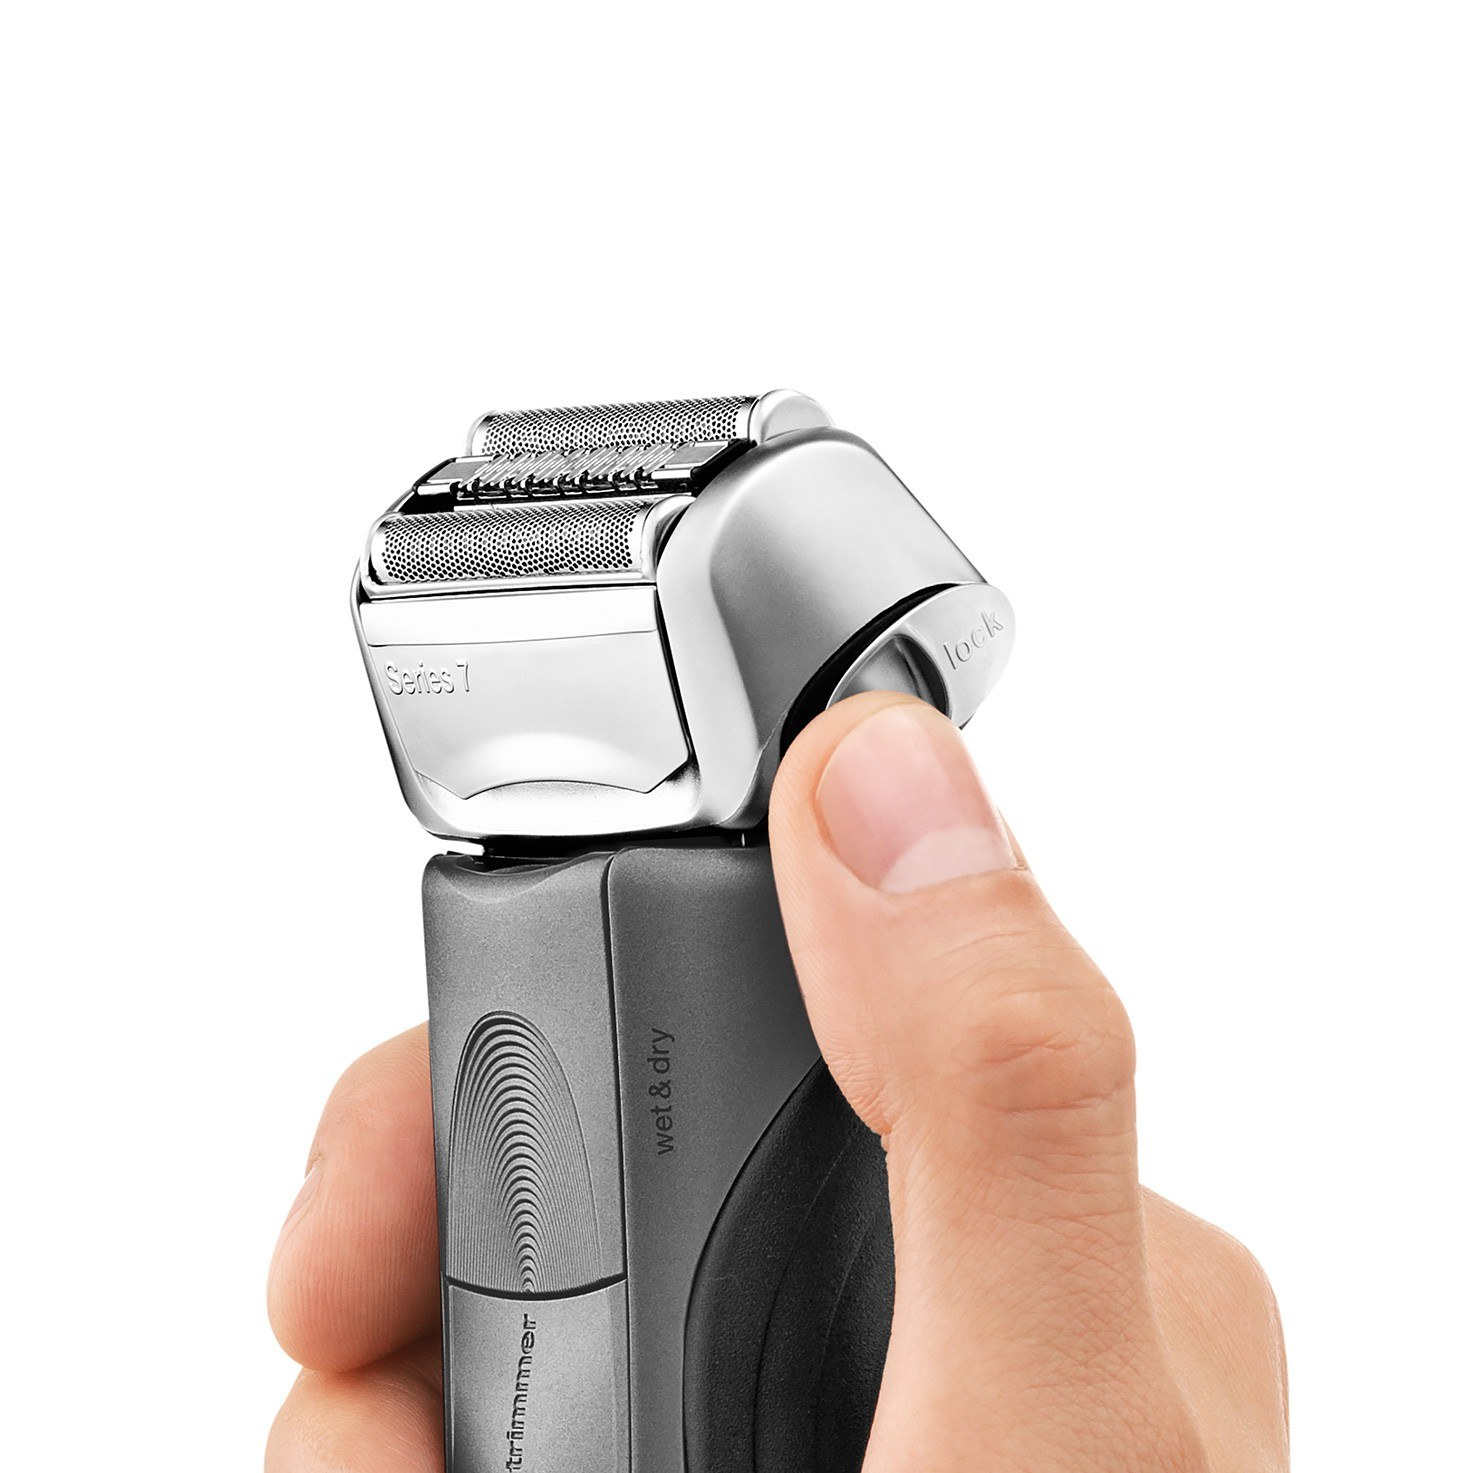 Braun Series 7 grey electric shaver in hand